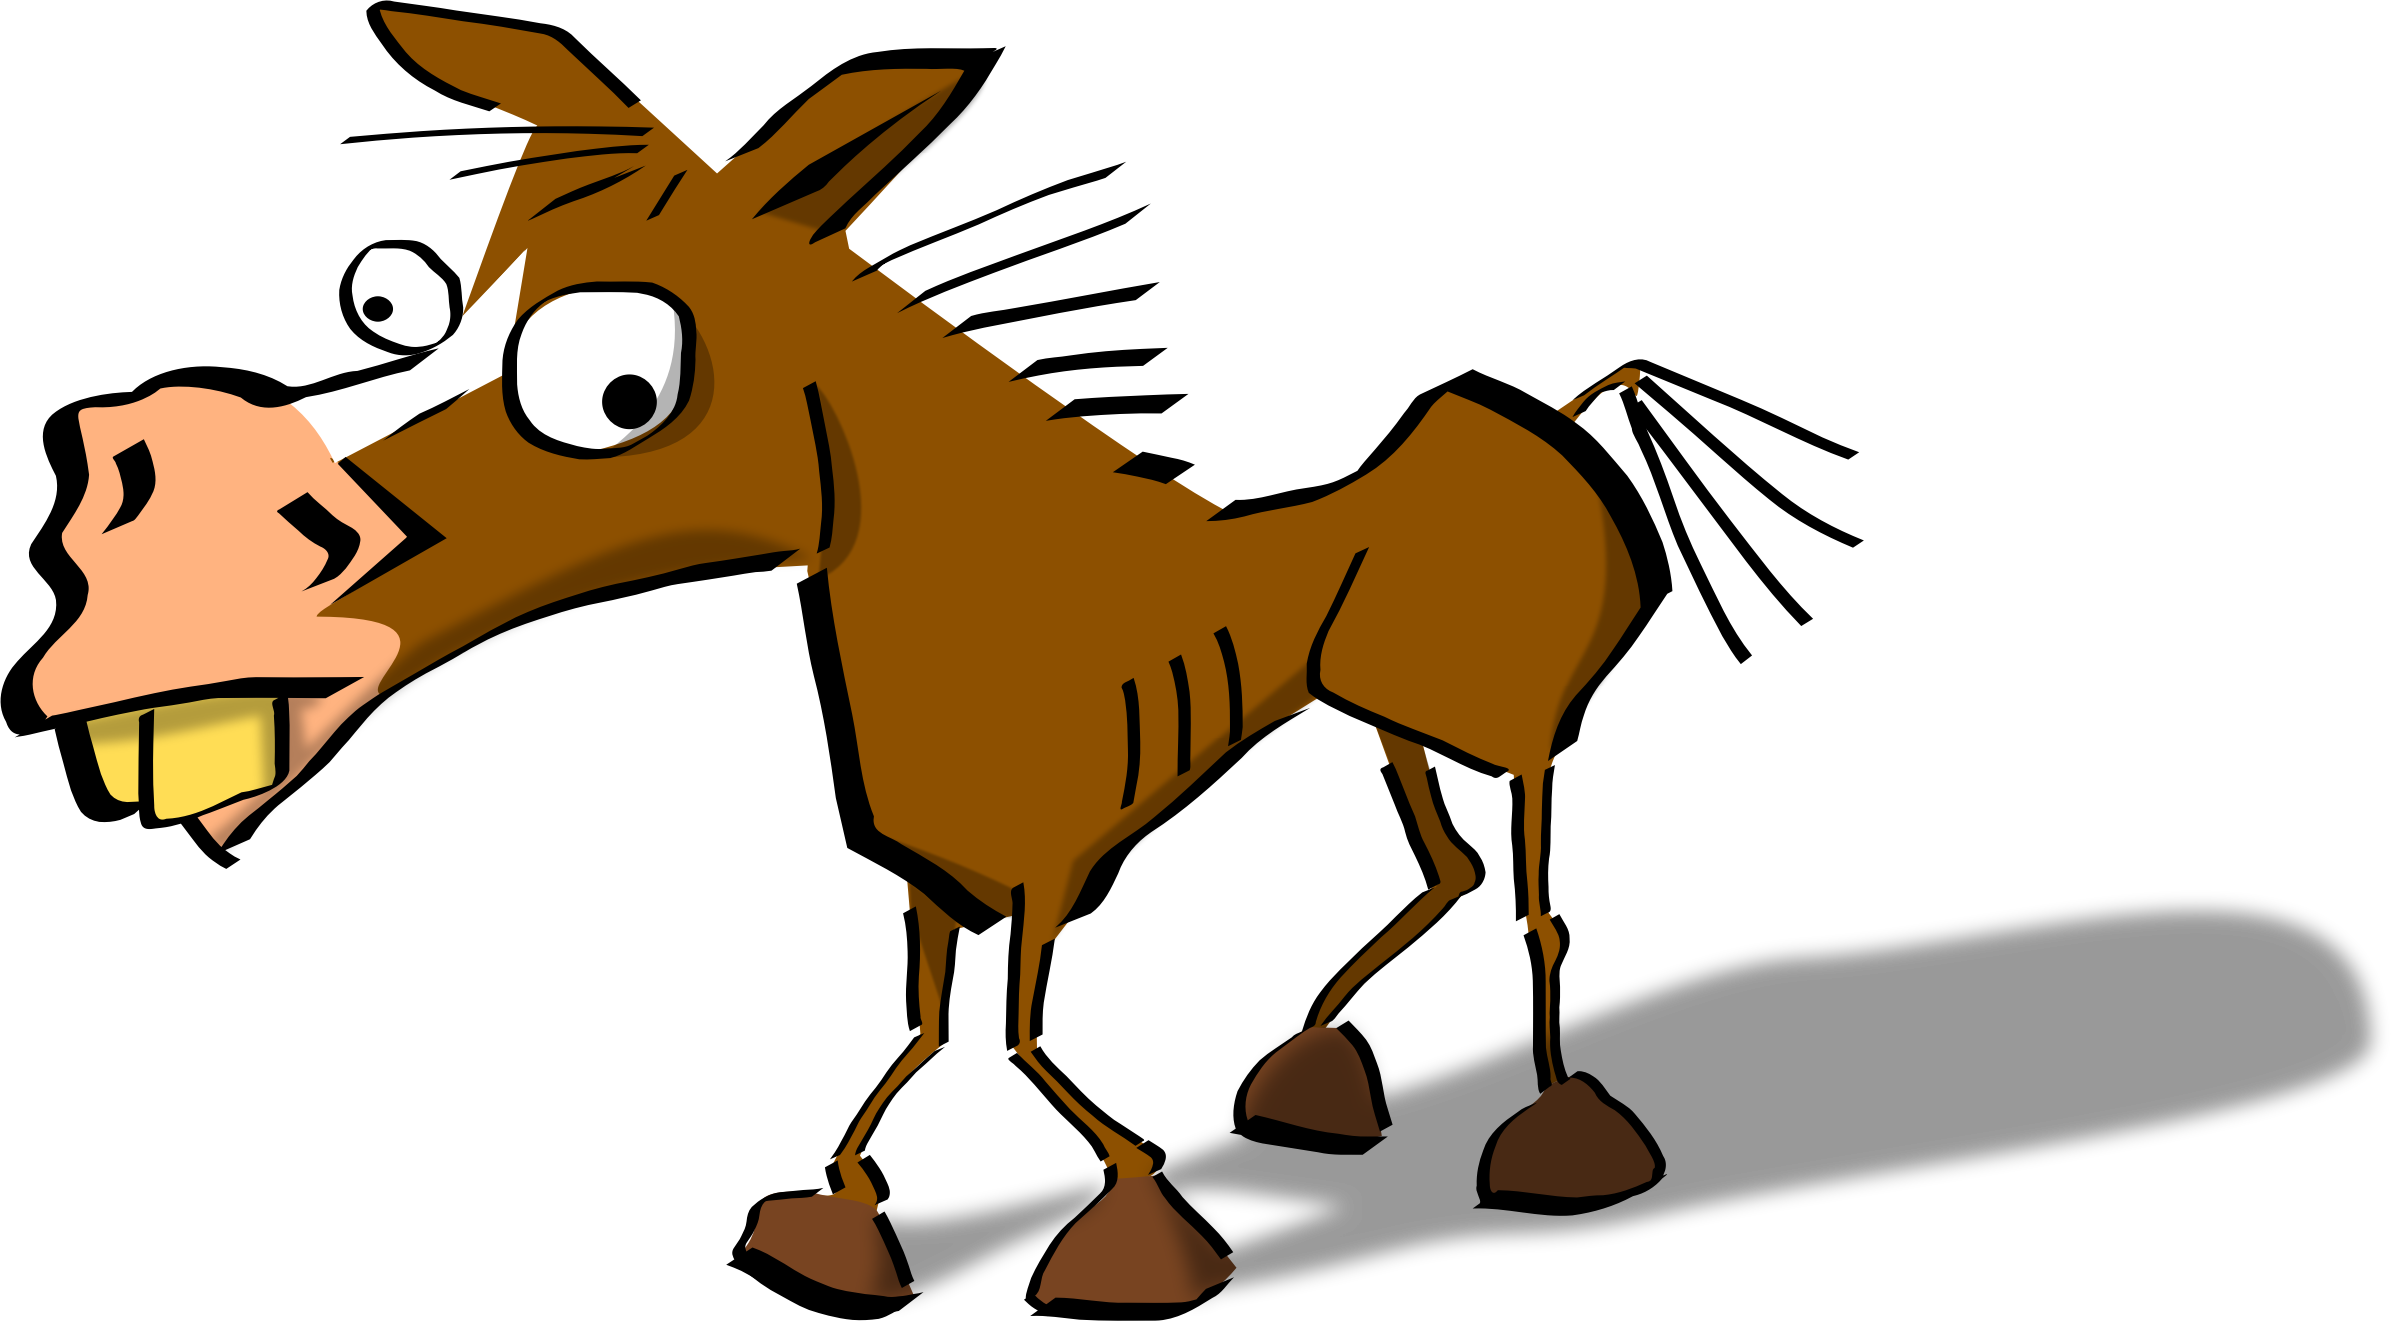 cowboy svg horse transparent background